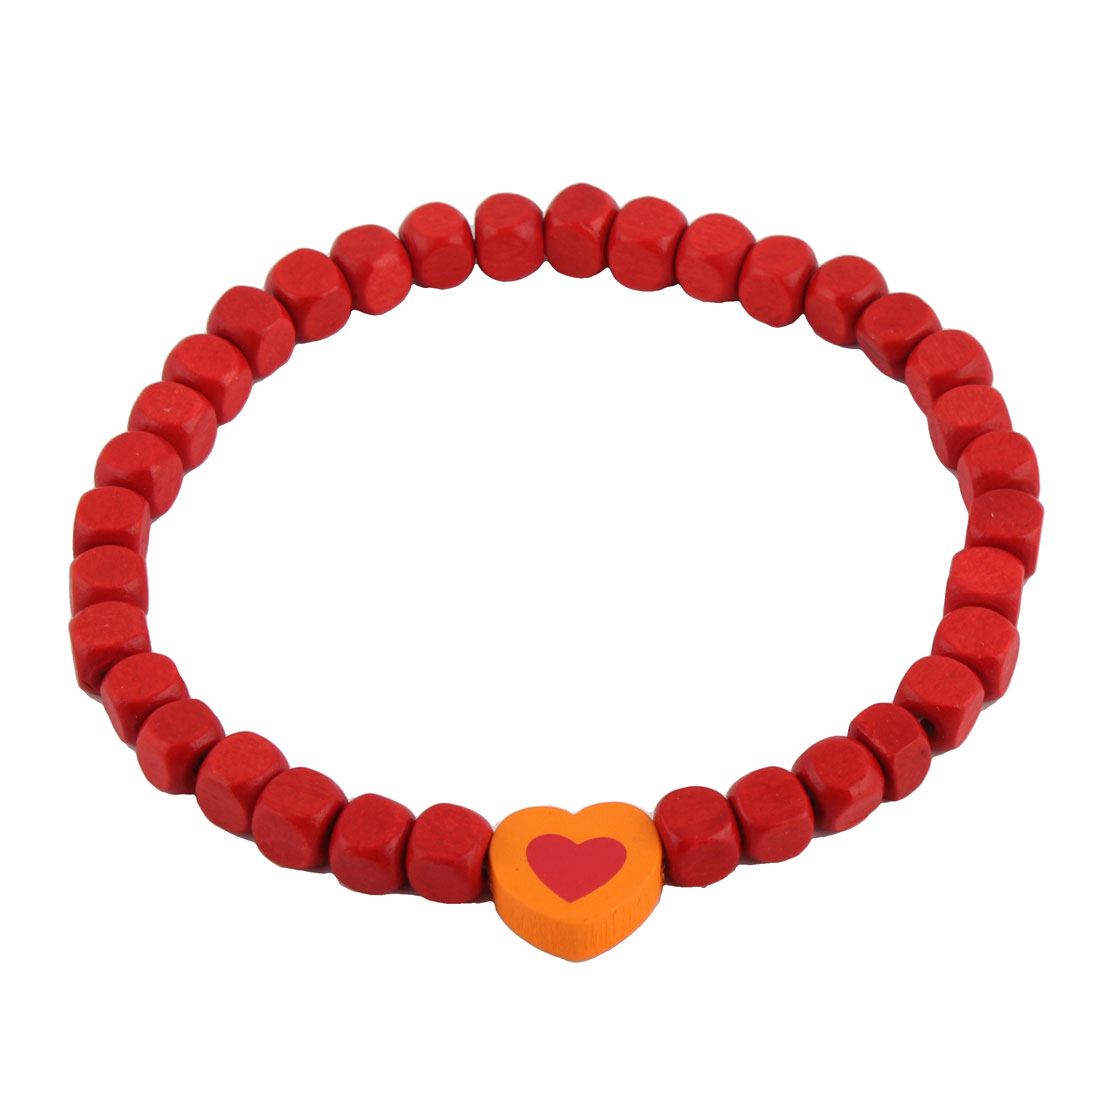 Dog Cat Wood Beads Heart Shaped Pendant Decor Stretchy Collar Necklace Red Orange